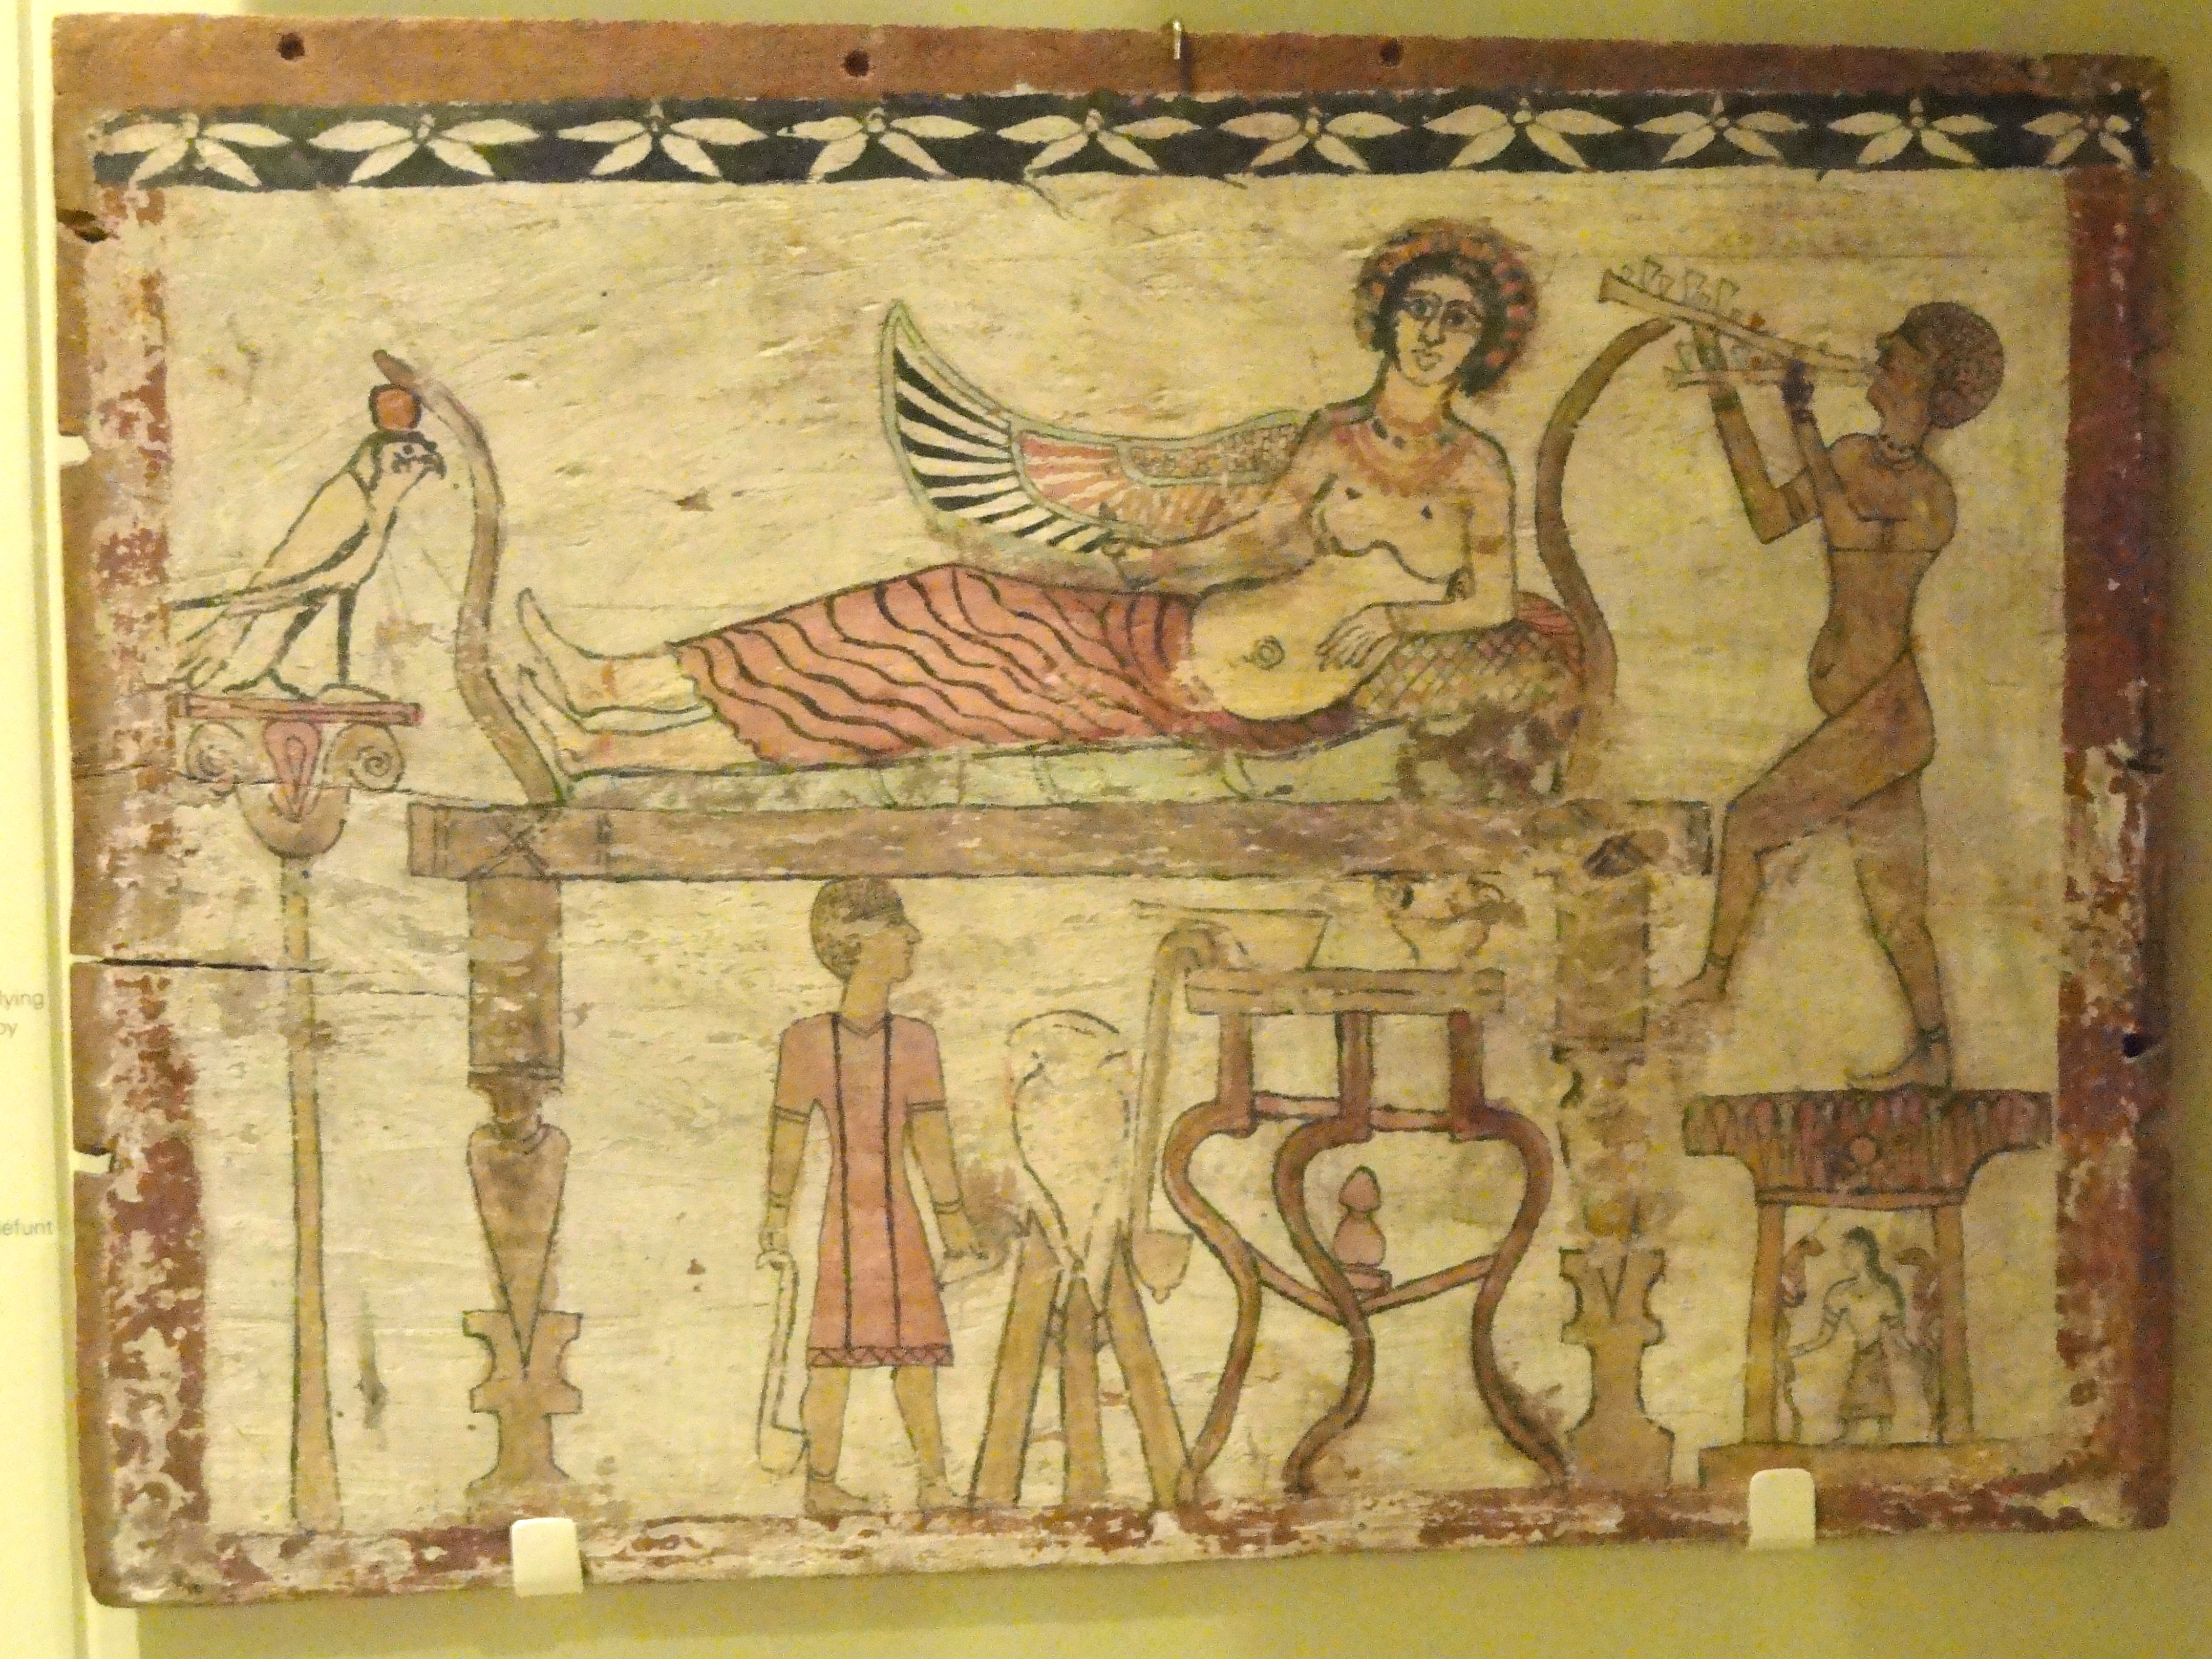 https://i1.wp.com/upload.wikimedia.org/wikipedia/commons/7/76/Coffin_floorboard_depicting_Isis_being_served_wine_by_the_deceased%2C_Egypt%2C_Roman_Period%2C_30_BC_-_AD_324_-_Royal_Ontario_Museum_-_DSC09735.JPG